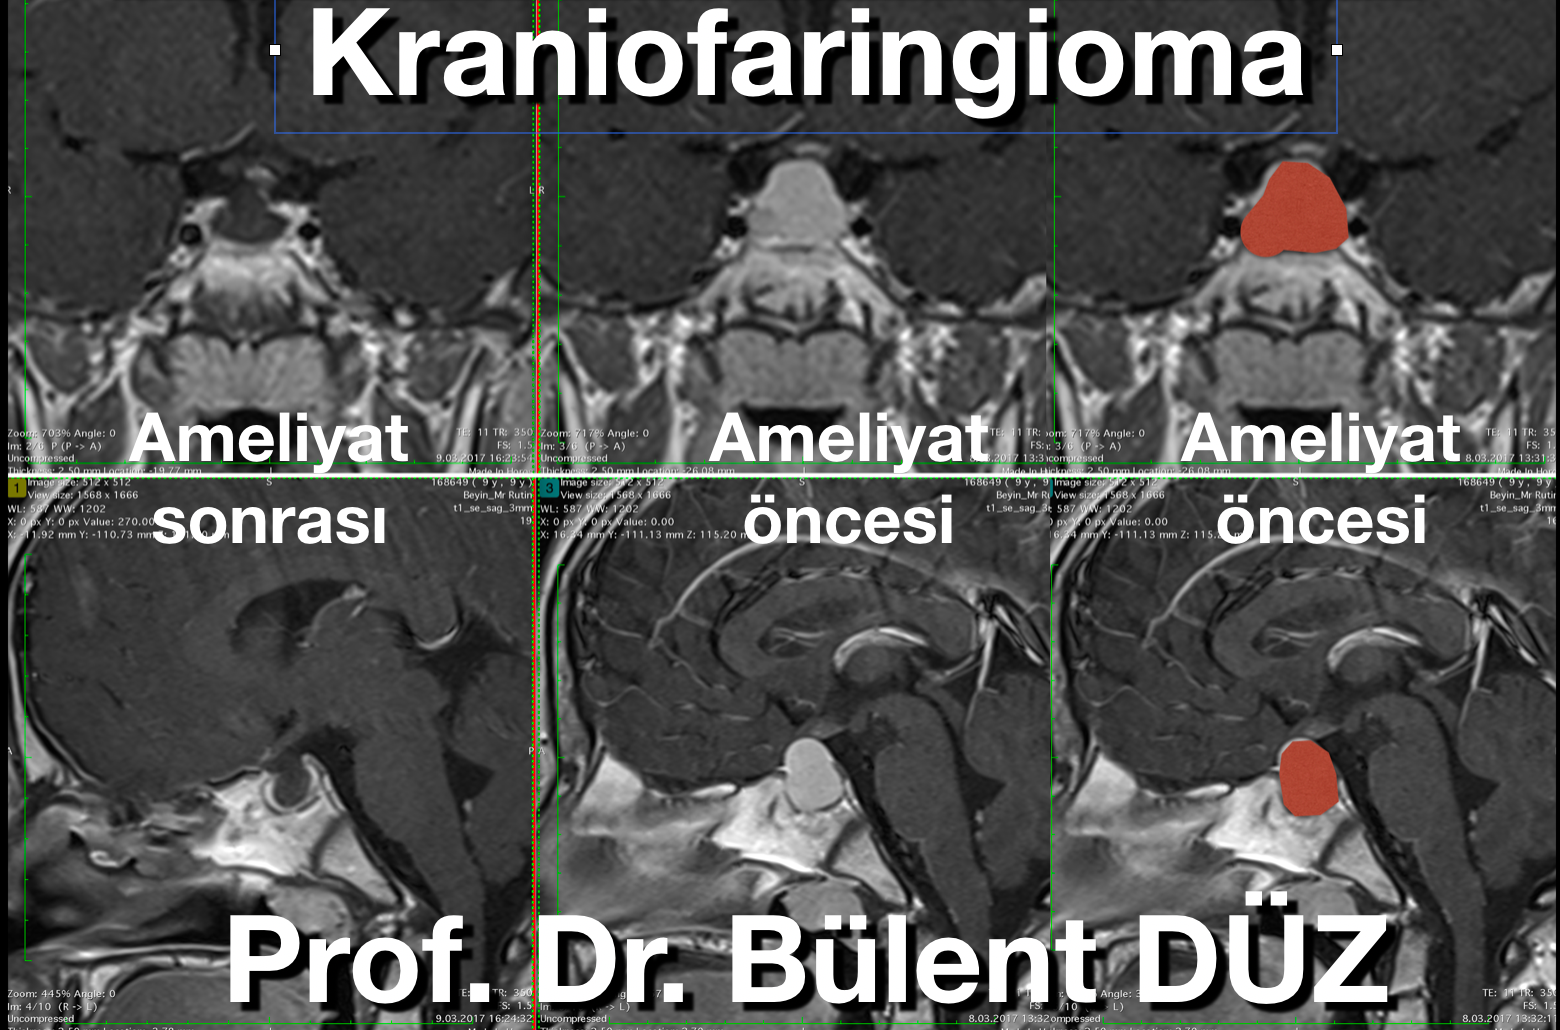 Kraniofaringioma AS.png